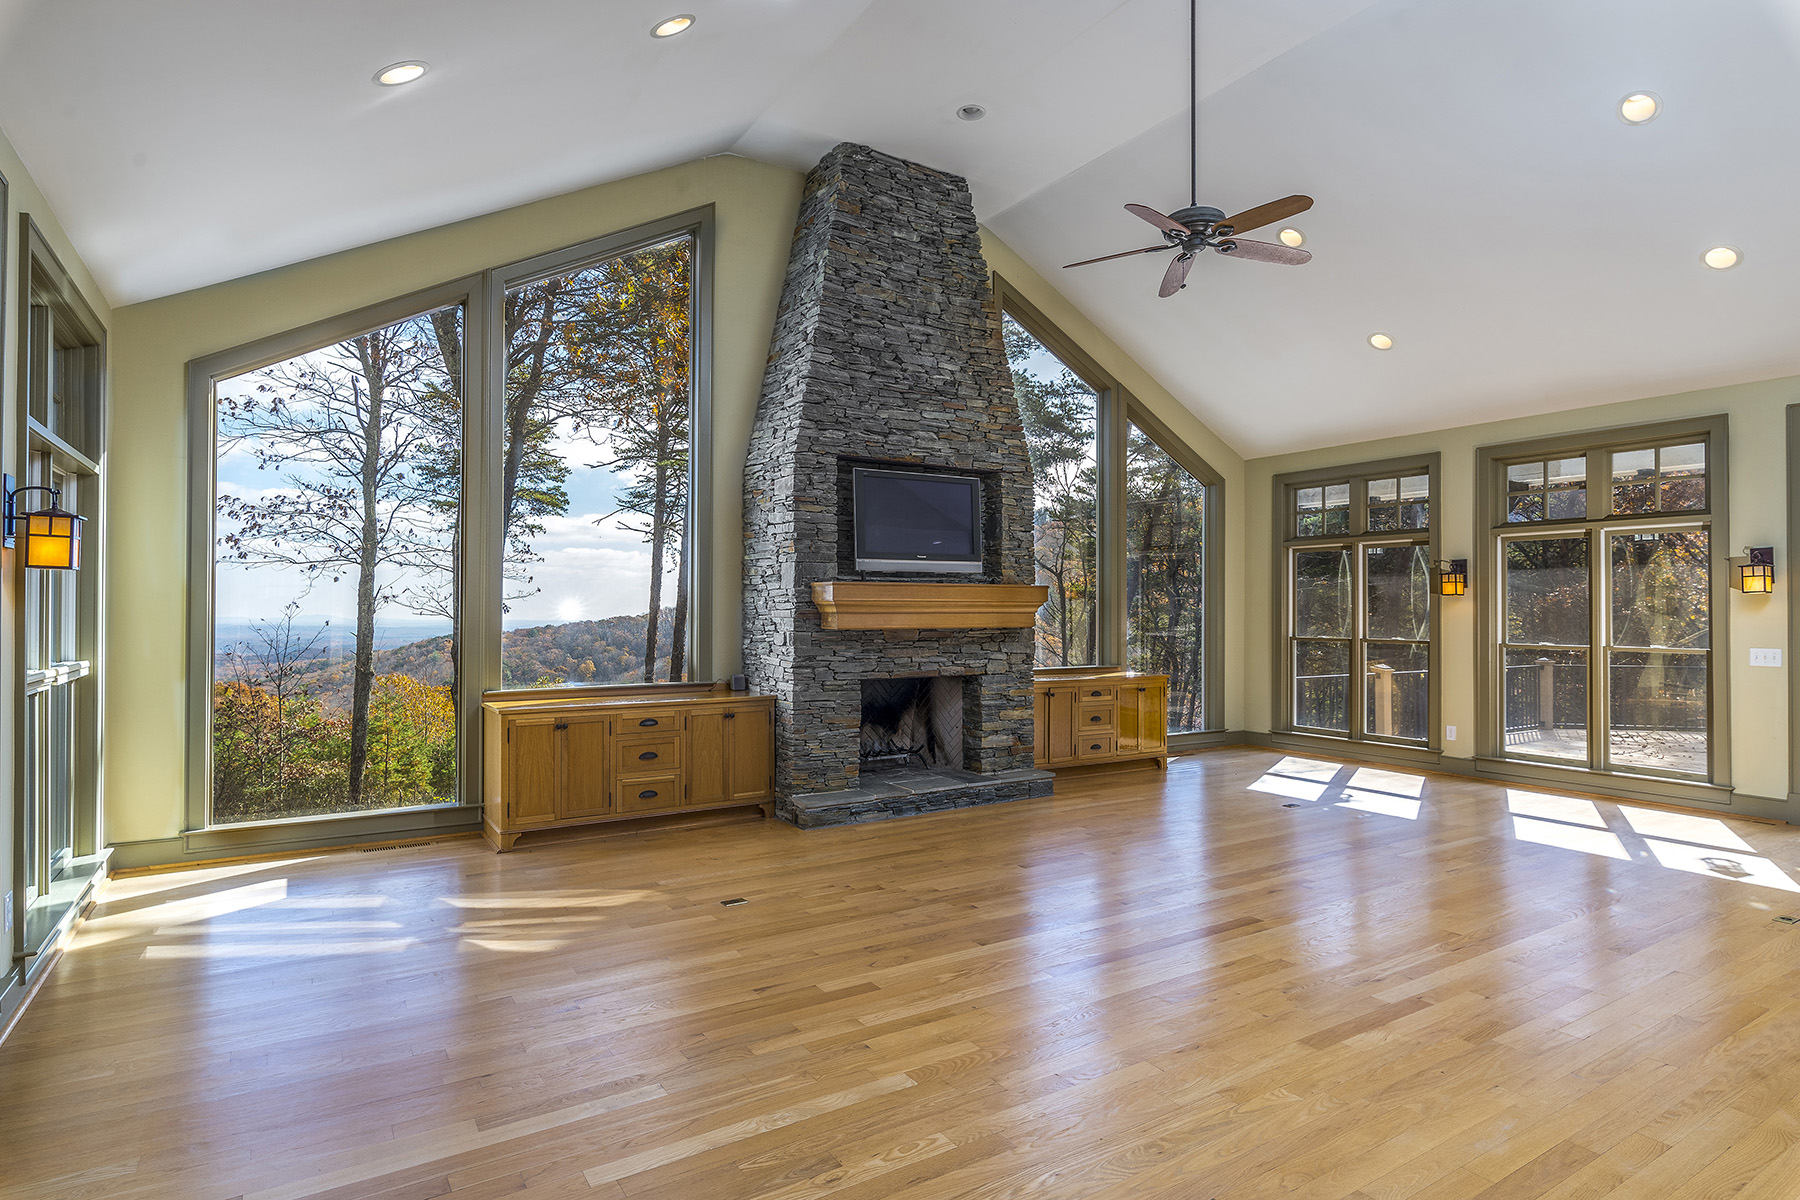 Single Family Home for Sale at Amazing Long Range Mountain View. Seven Private Acres. 13 Westview Dr Jasper, Georgia 30143 United States